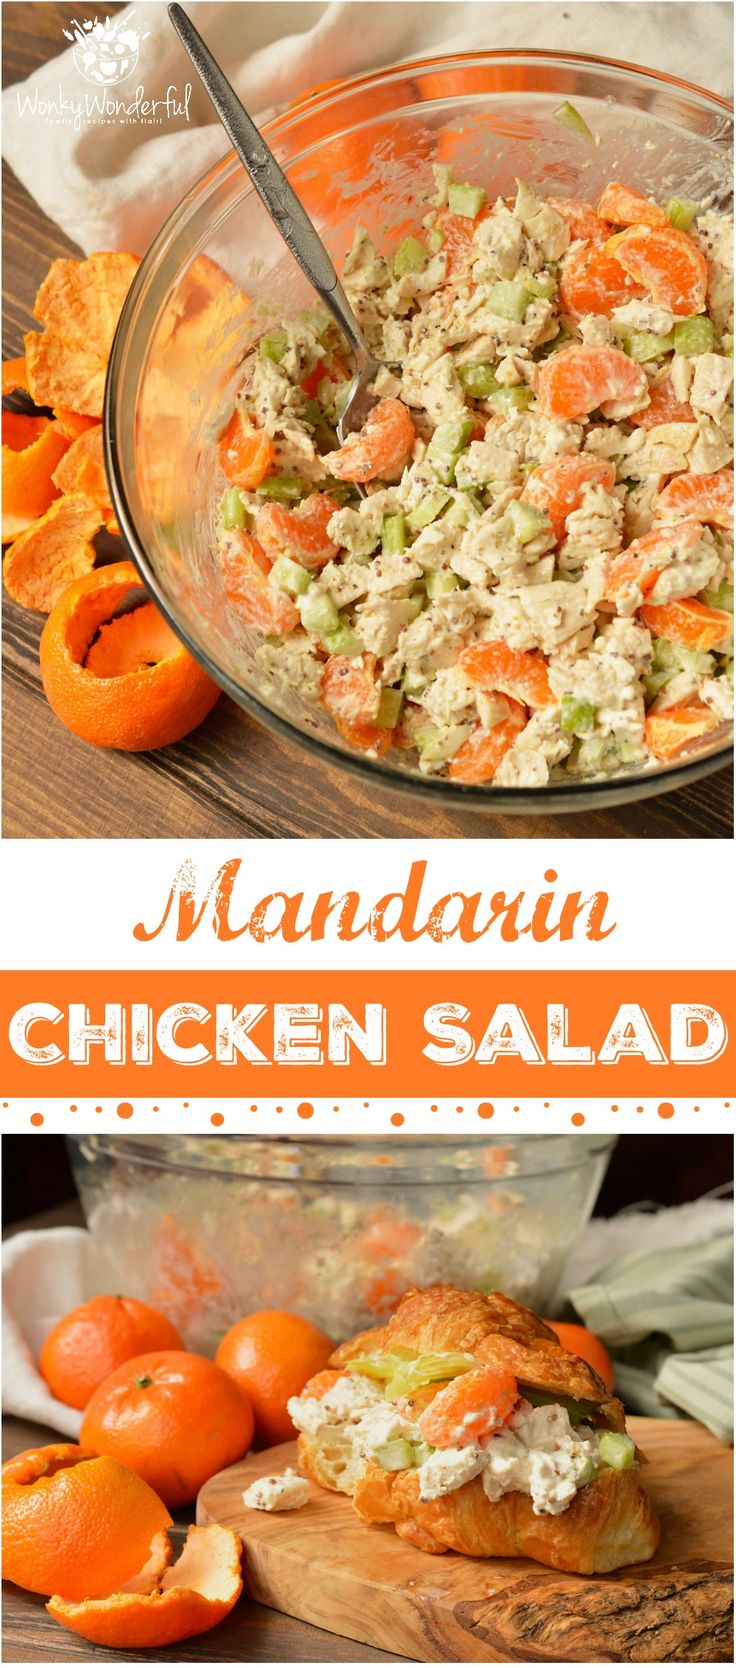 Take a break from boring old chicken salad and make this Mandarin Orange Chicken Salad Recipe. The tangy dijon mustard and sweet mandarin oranges take this chicken salad to the next level! With just 5 ingredients this makes a great nutritious lunch or din (mini fruit tarts filling)